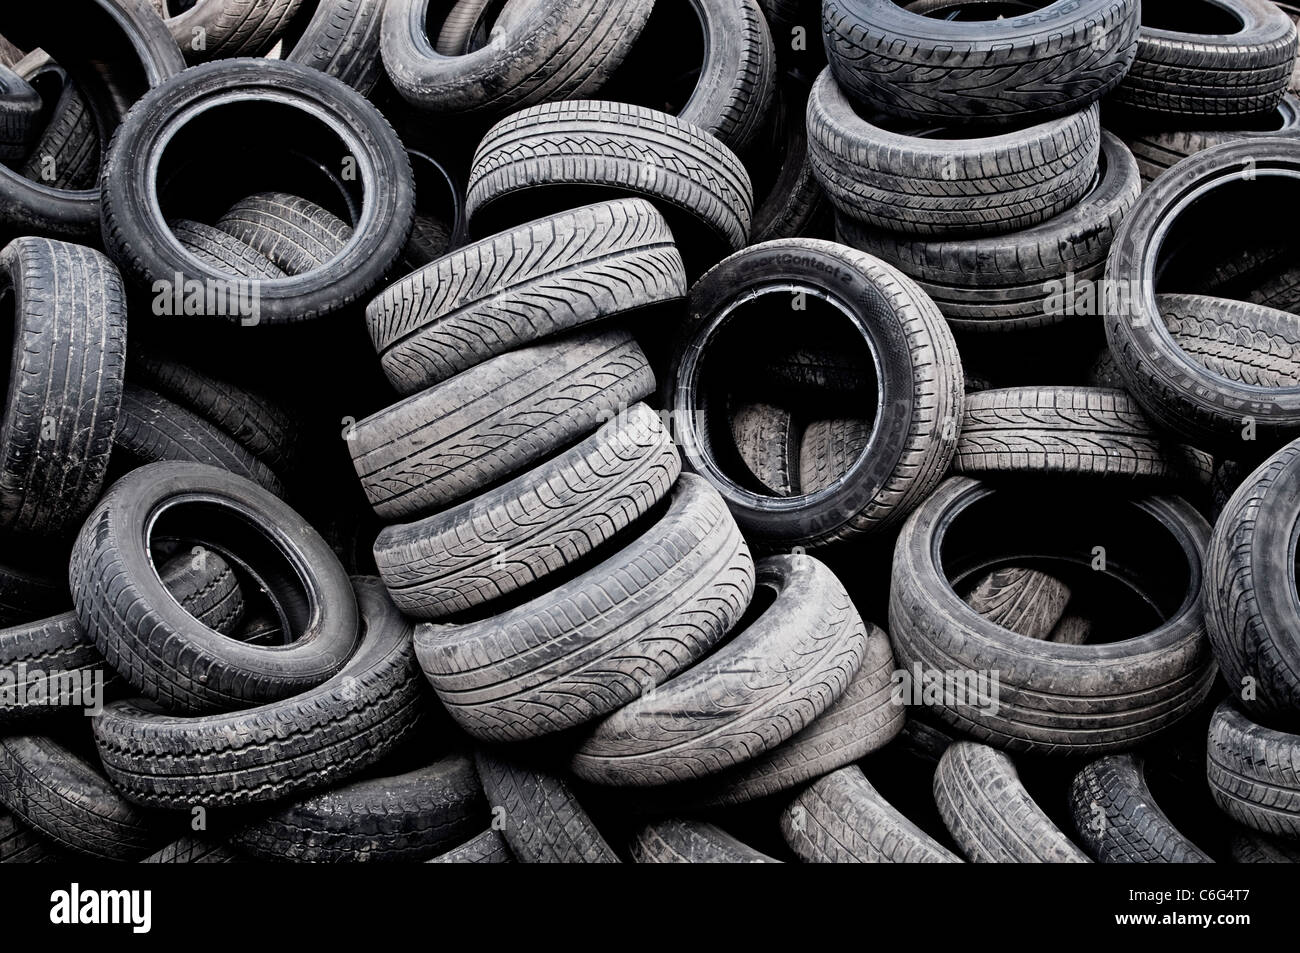 A pile of used tyres - Stock Image